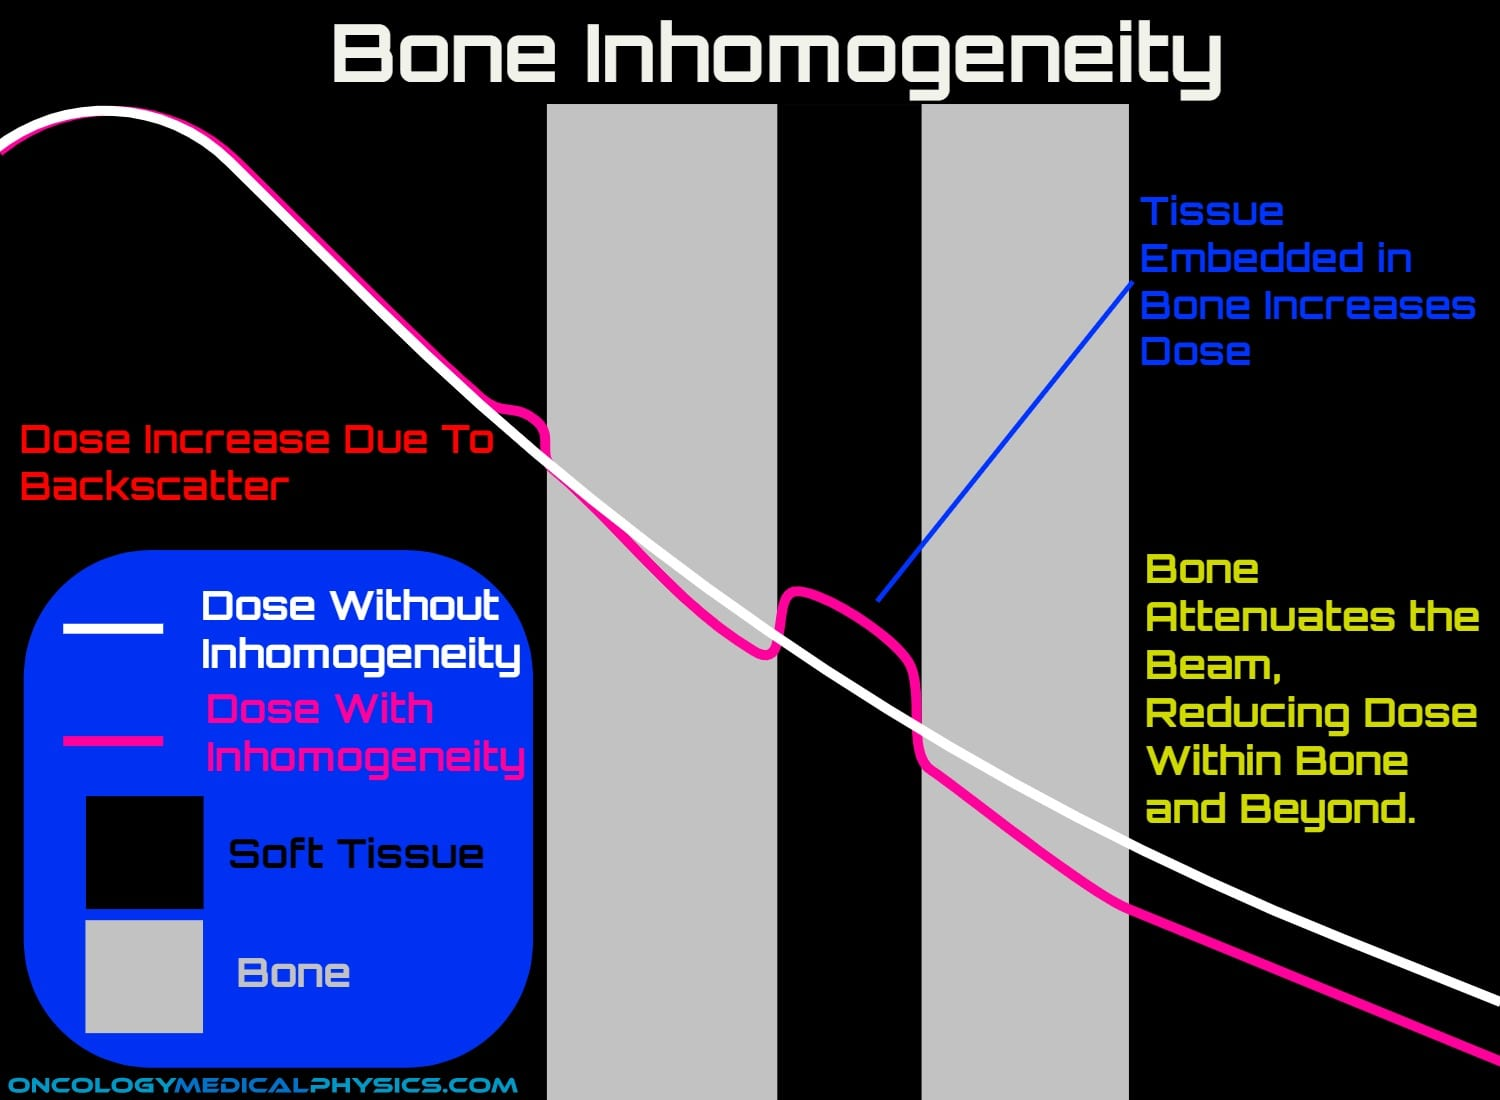 Bone attenuates photon beam but increases dose to tissue embedded in bone.